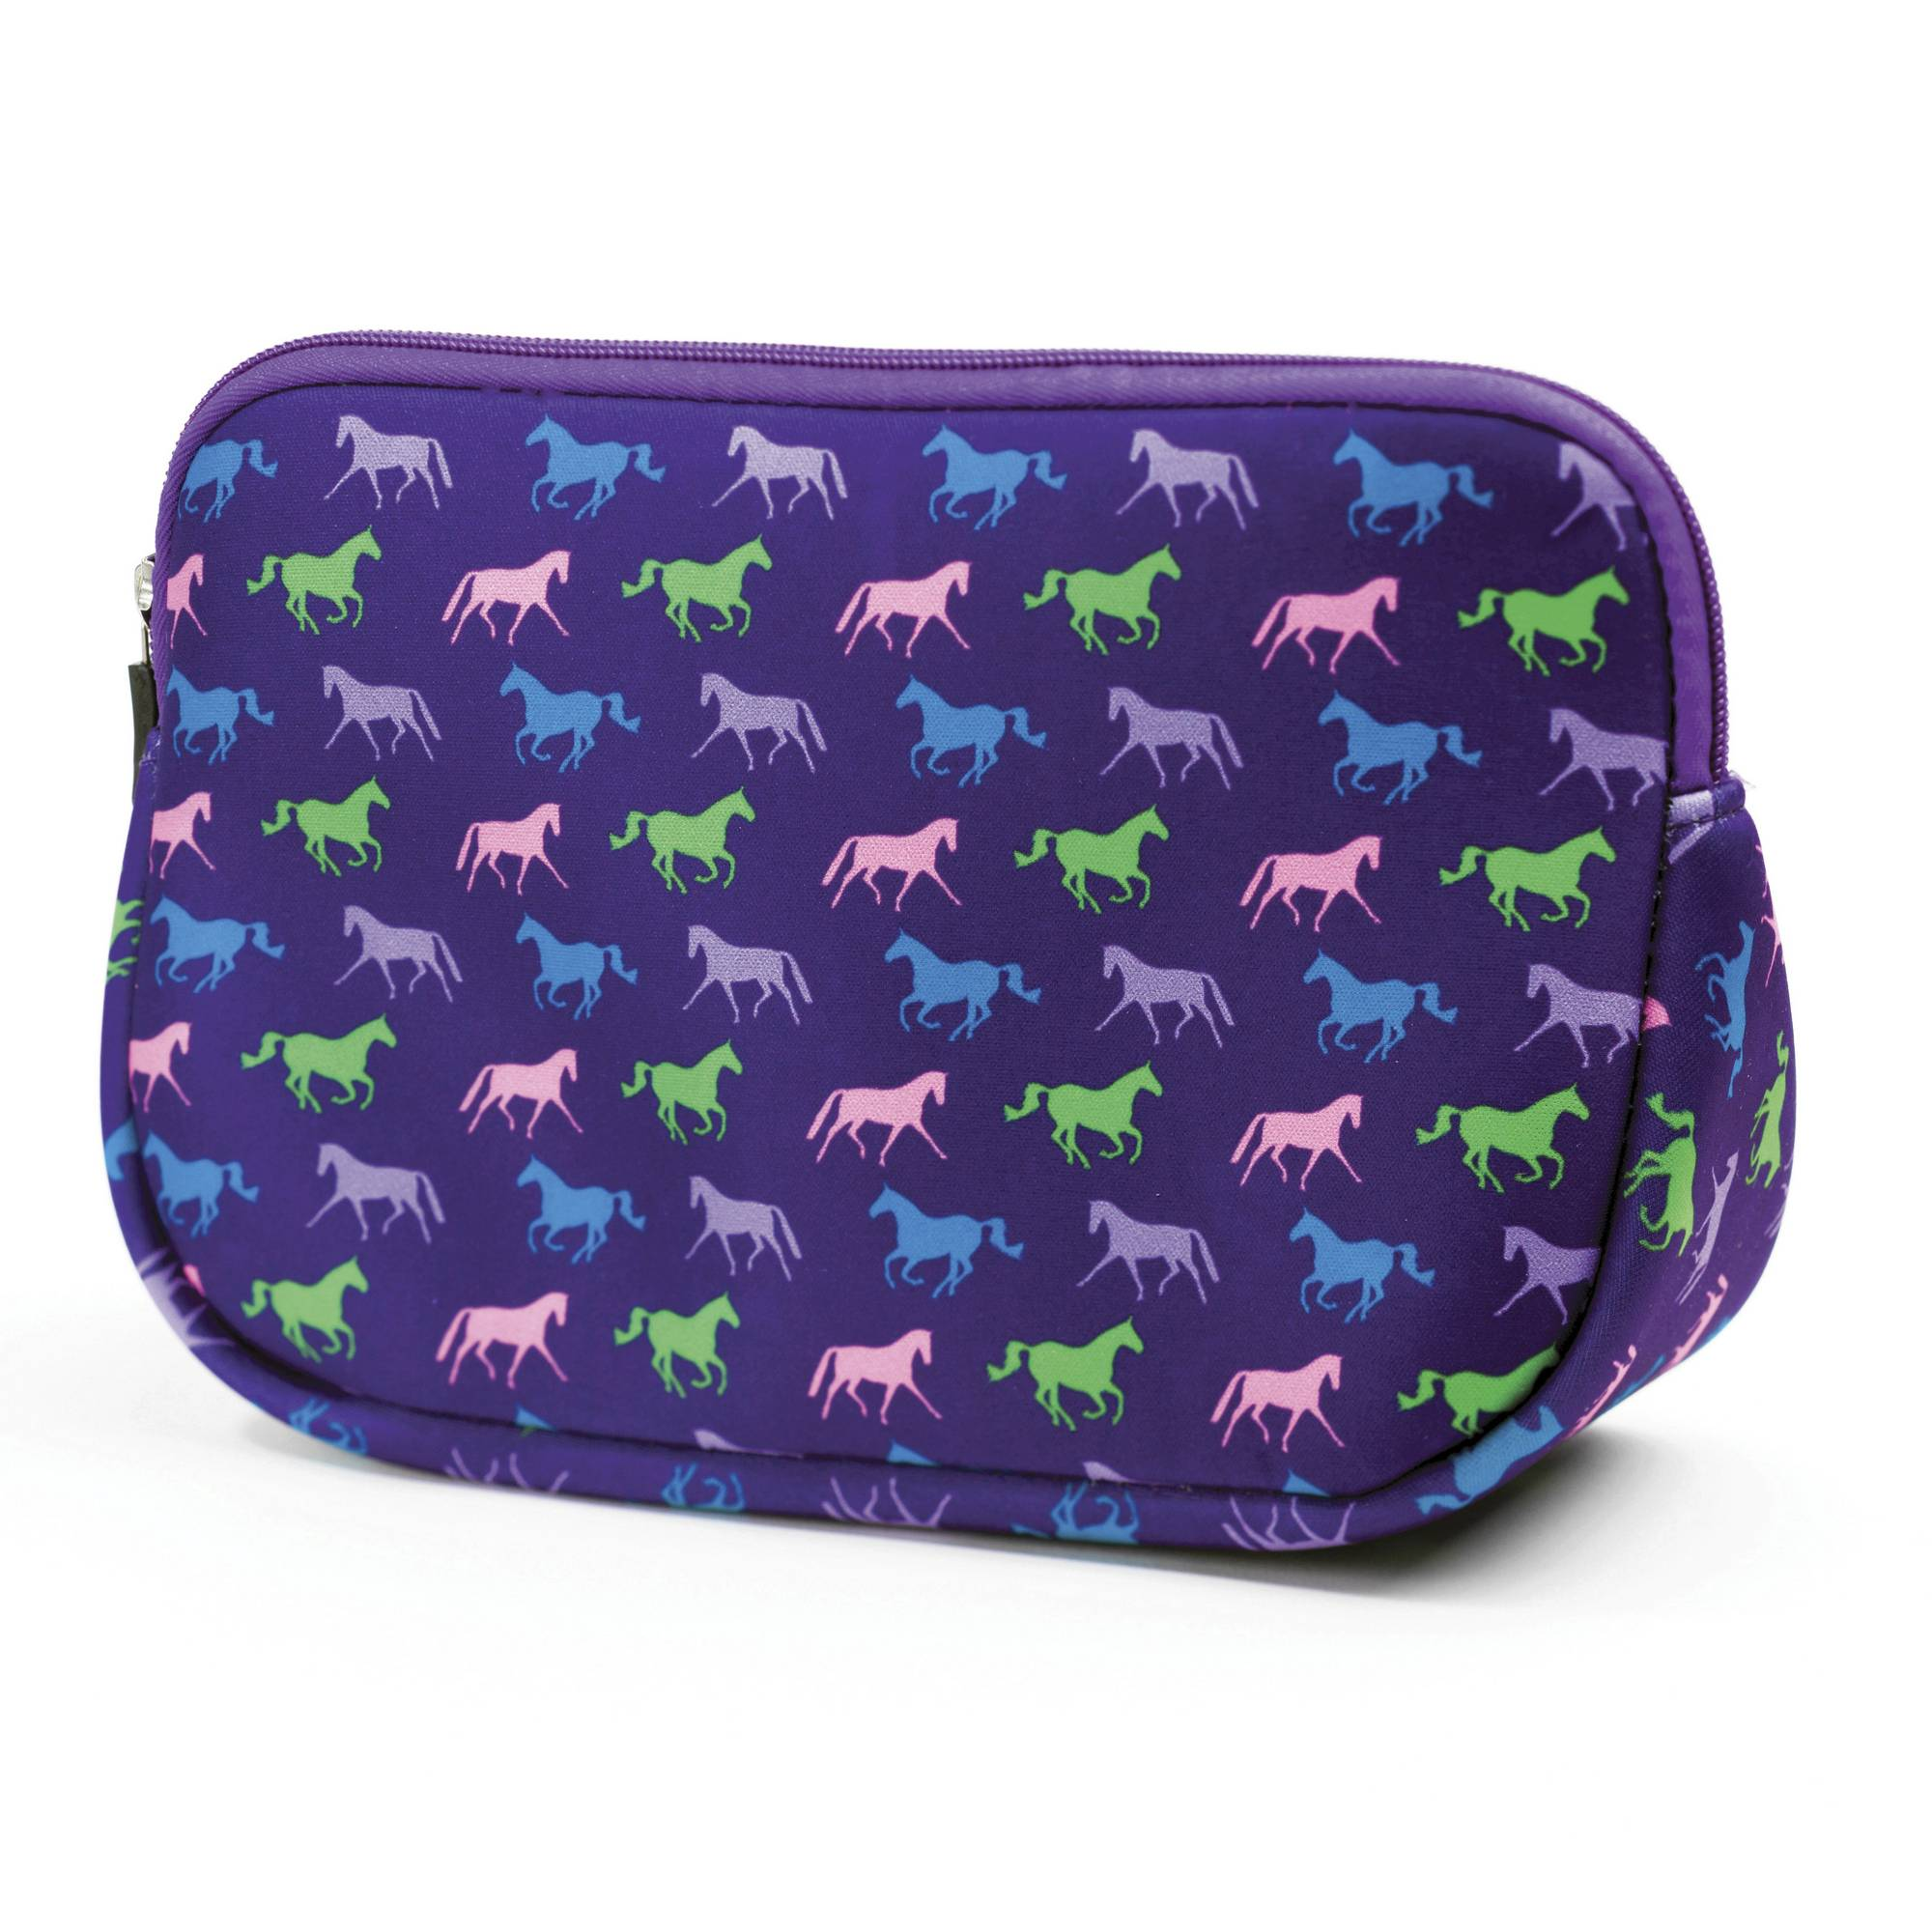 Kelley Neoprene Trianglualr Cosmetic Case - Horses